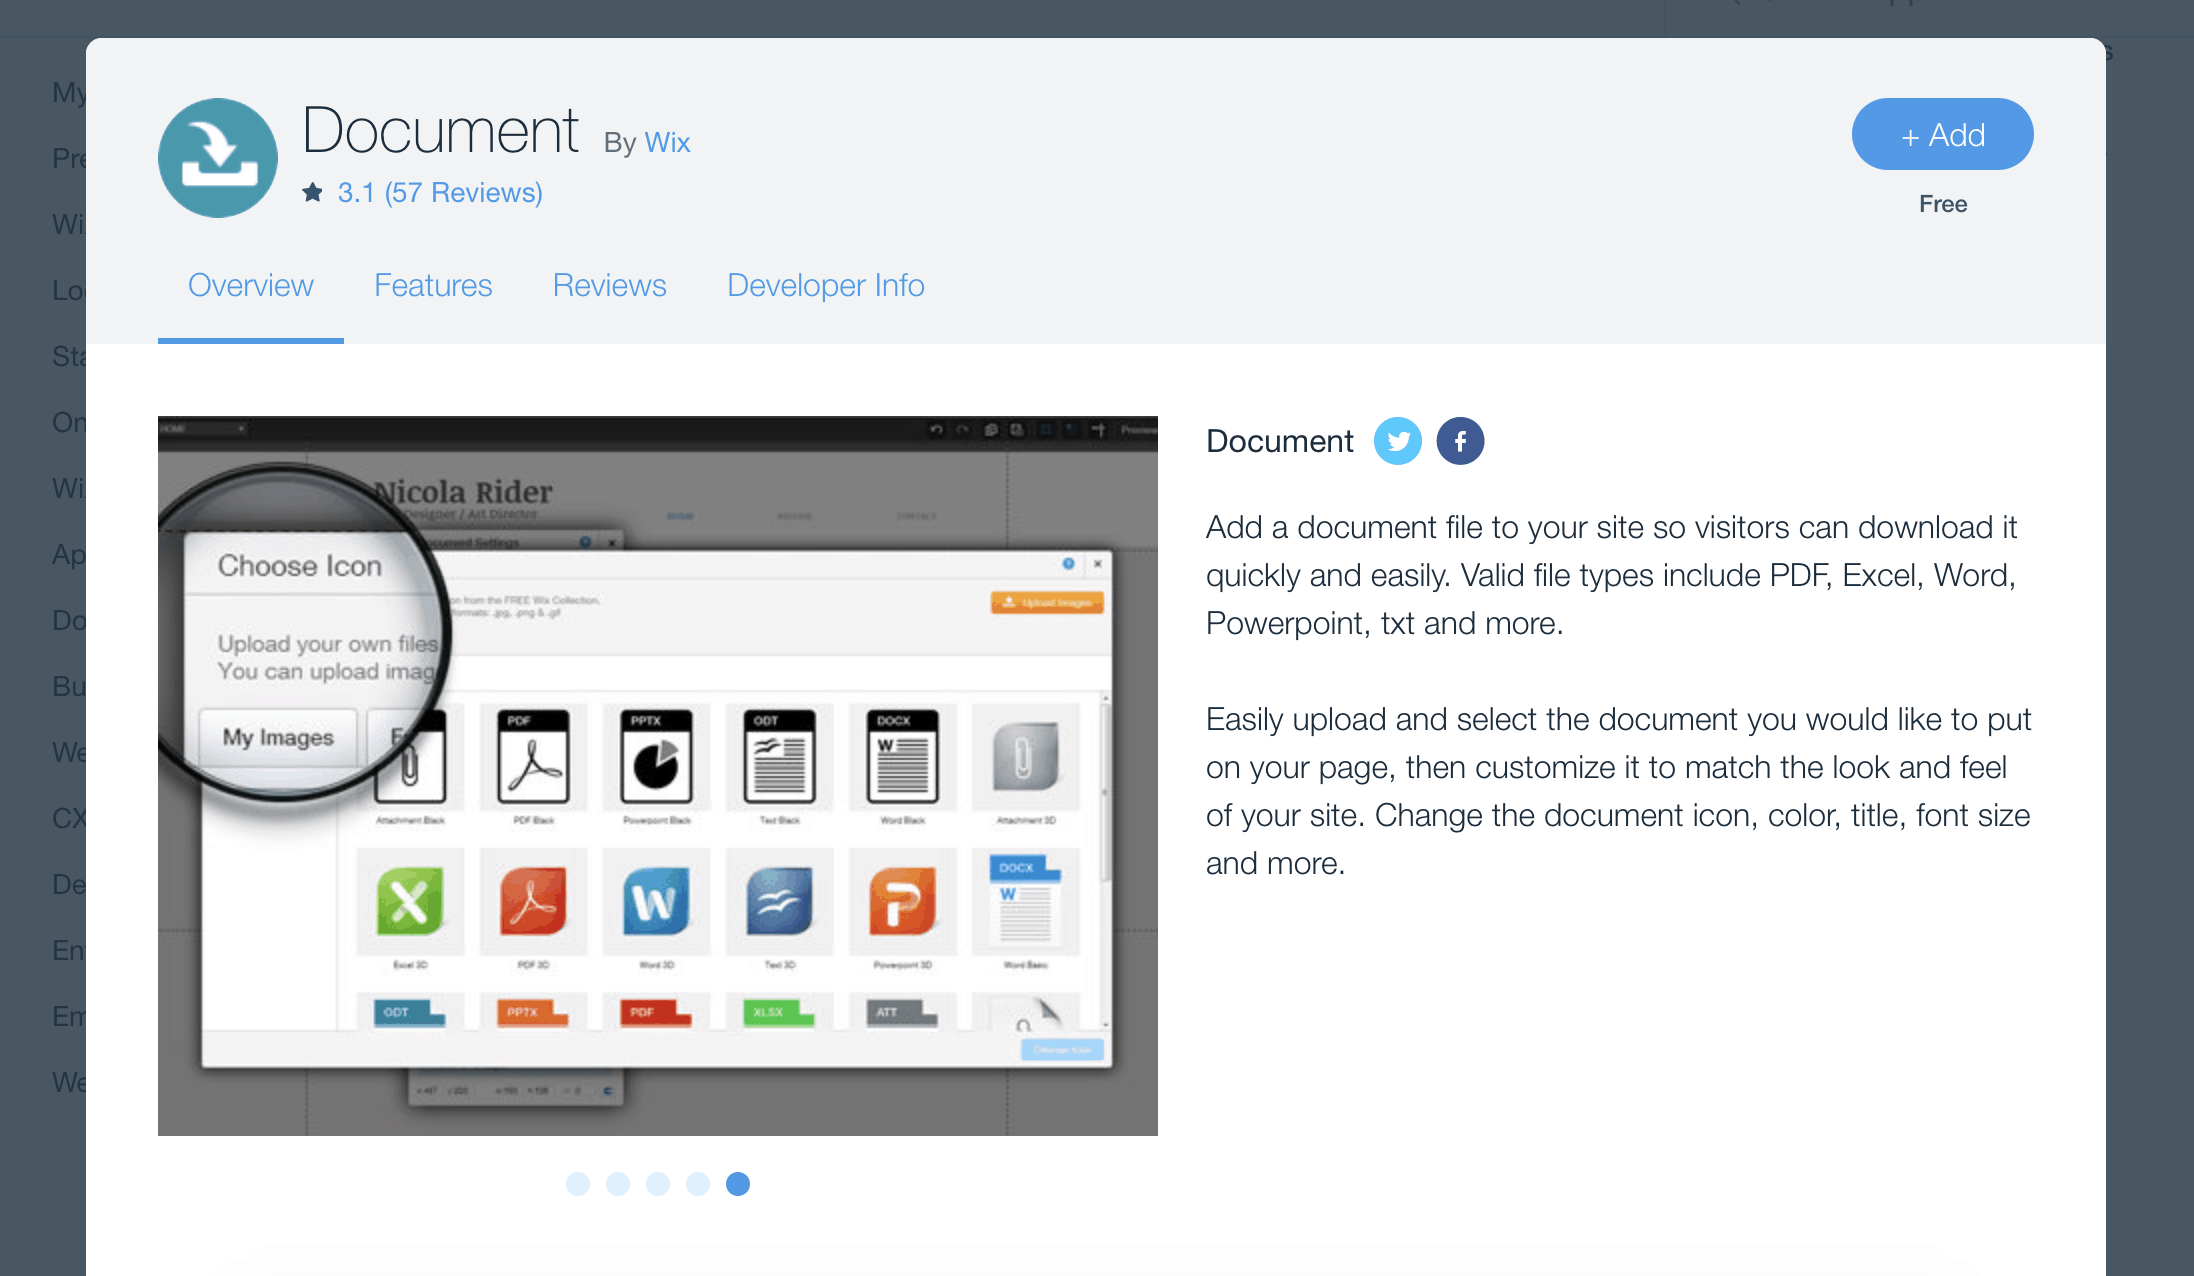 Wix Document app